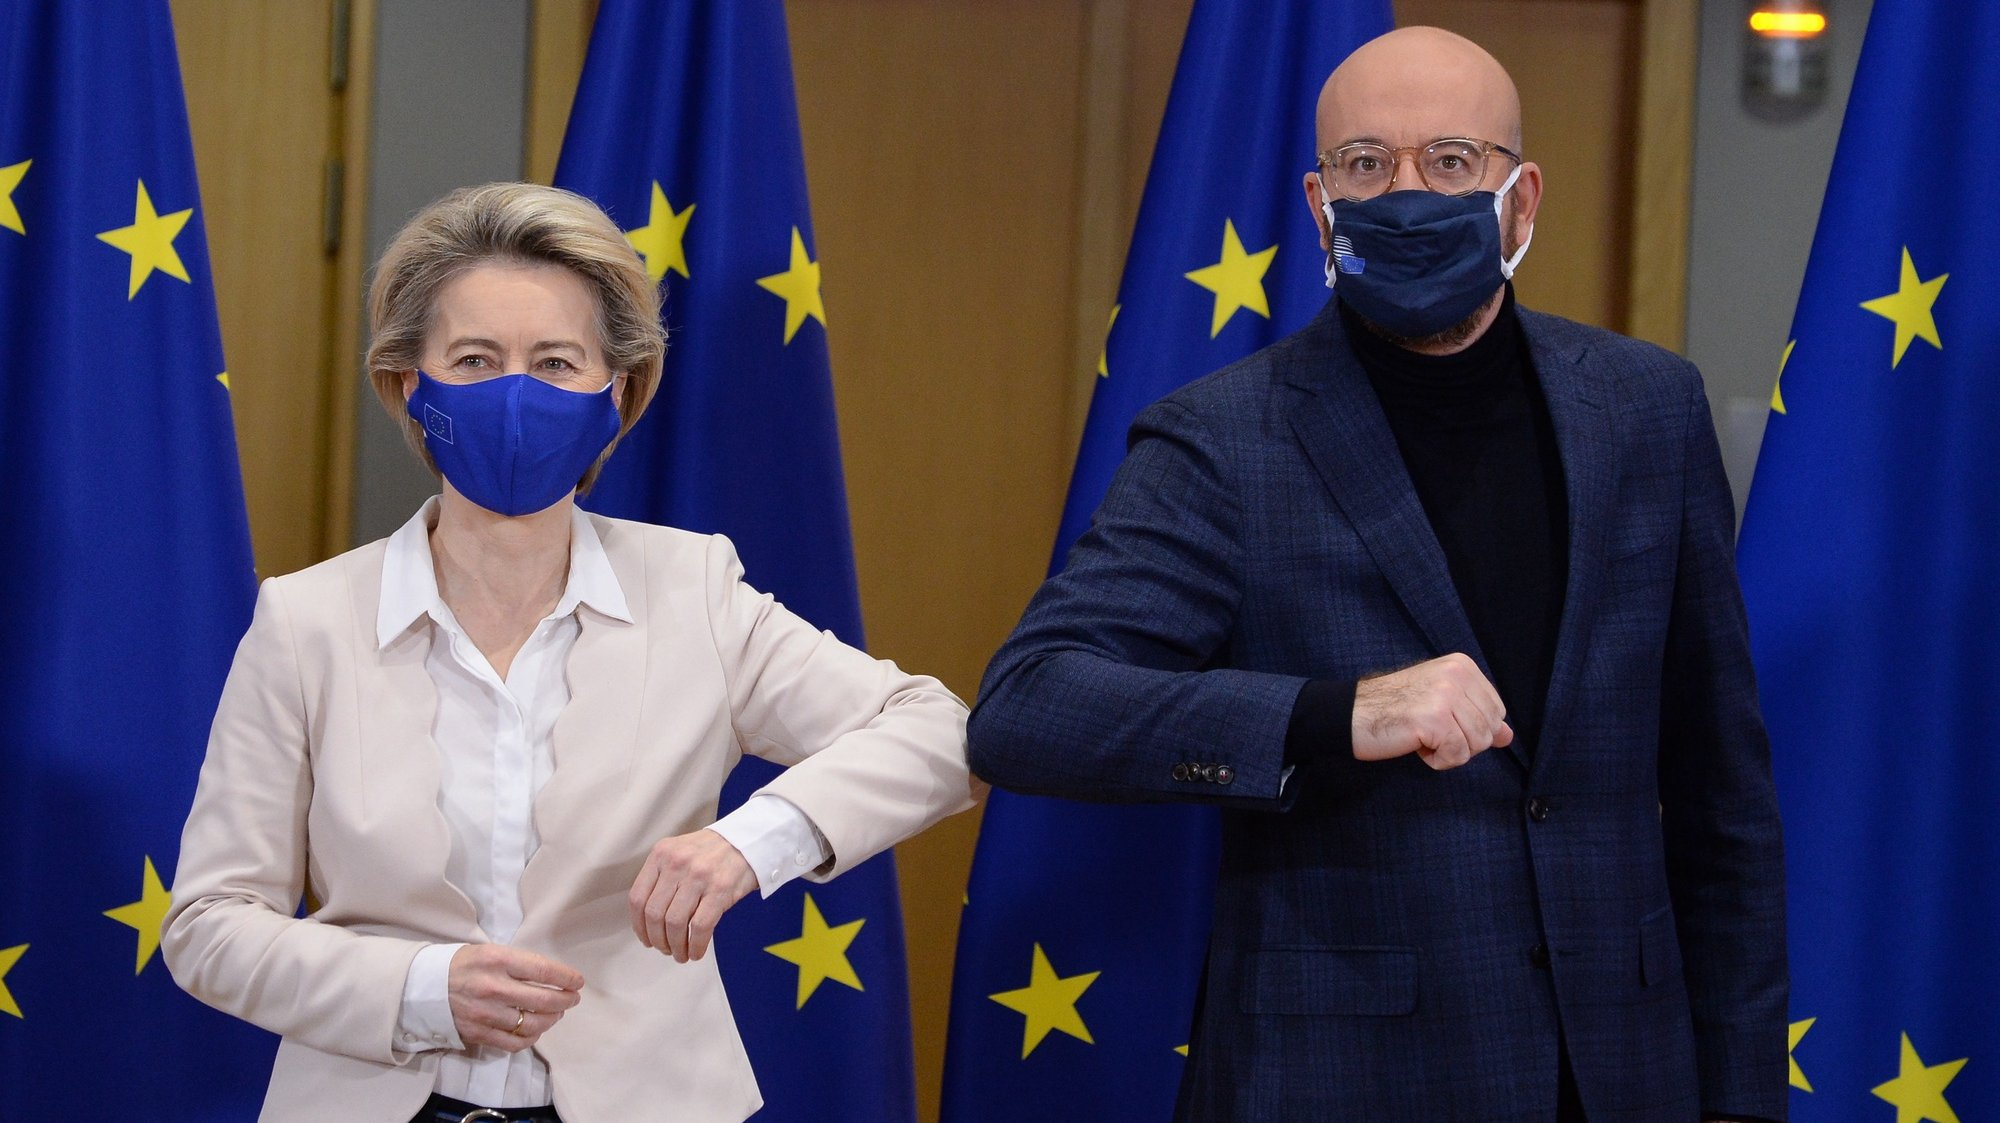 epa08910818 European Commission President Ursula von der Leyen (L) and European Council President Charles Michel bump elbows after signing Brexit trade agreement due to come into force on 01 January 2021, in Brussels, Belgium, 30 December 2020.  EPA/JOHANNA GERON / POOL